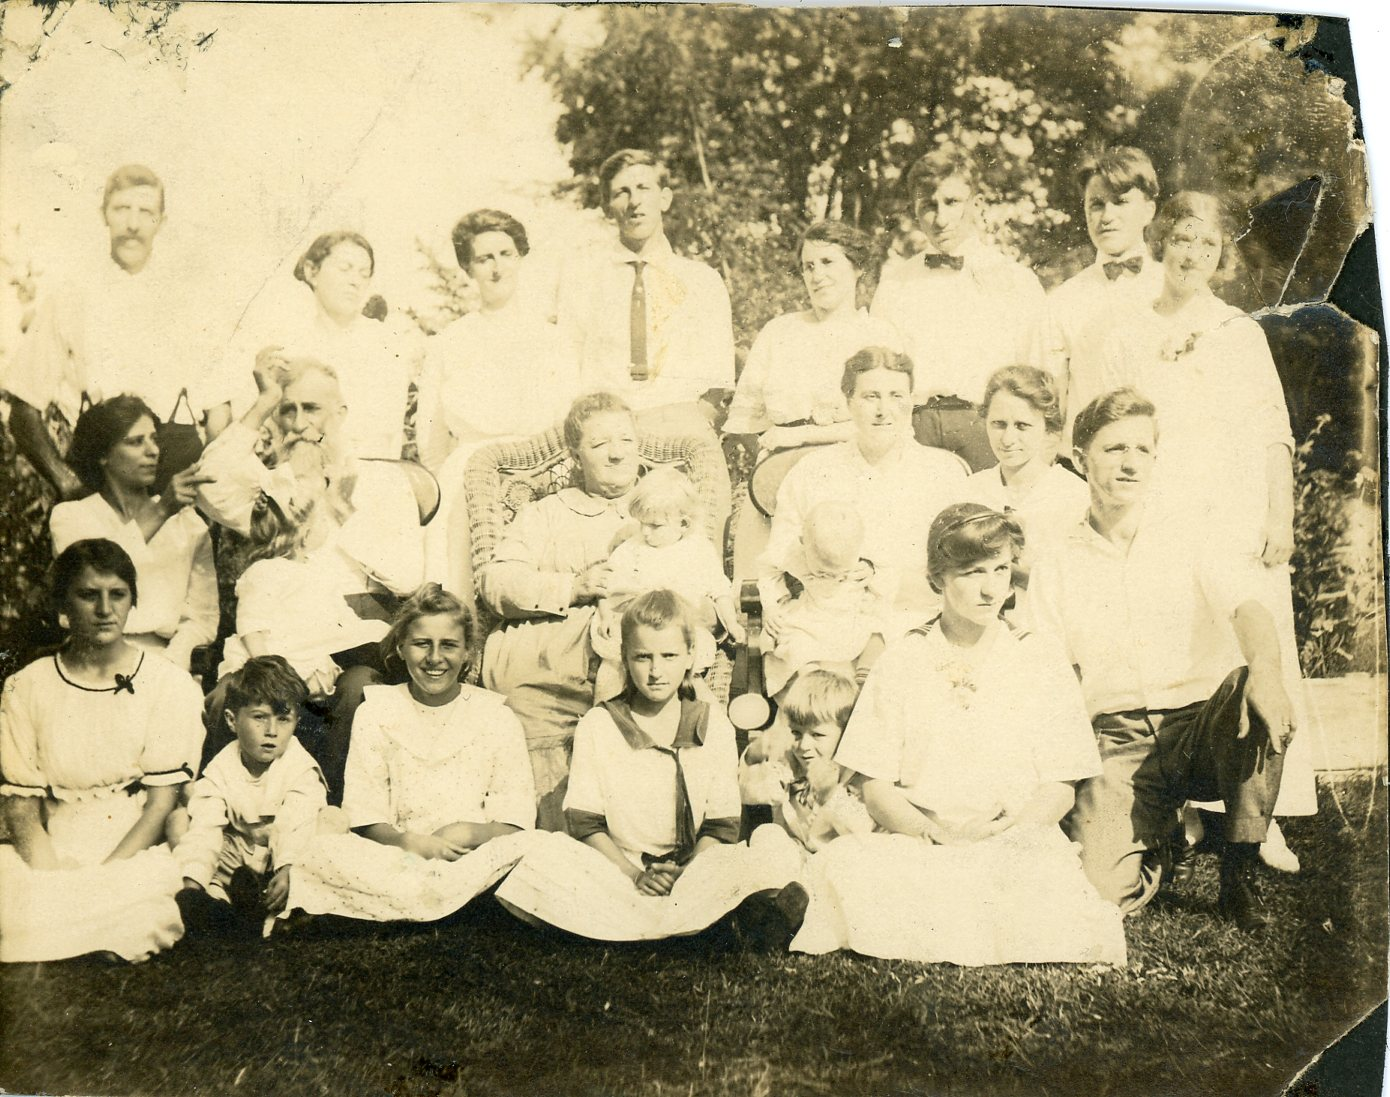 Henry Hamilton Wiggins, Kathryn Louisa Aukamp Wiggins and their family.